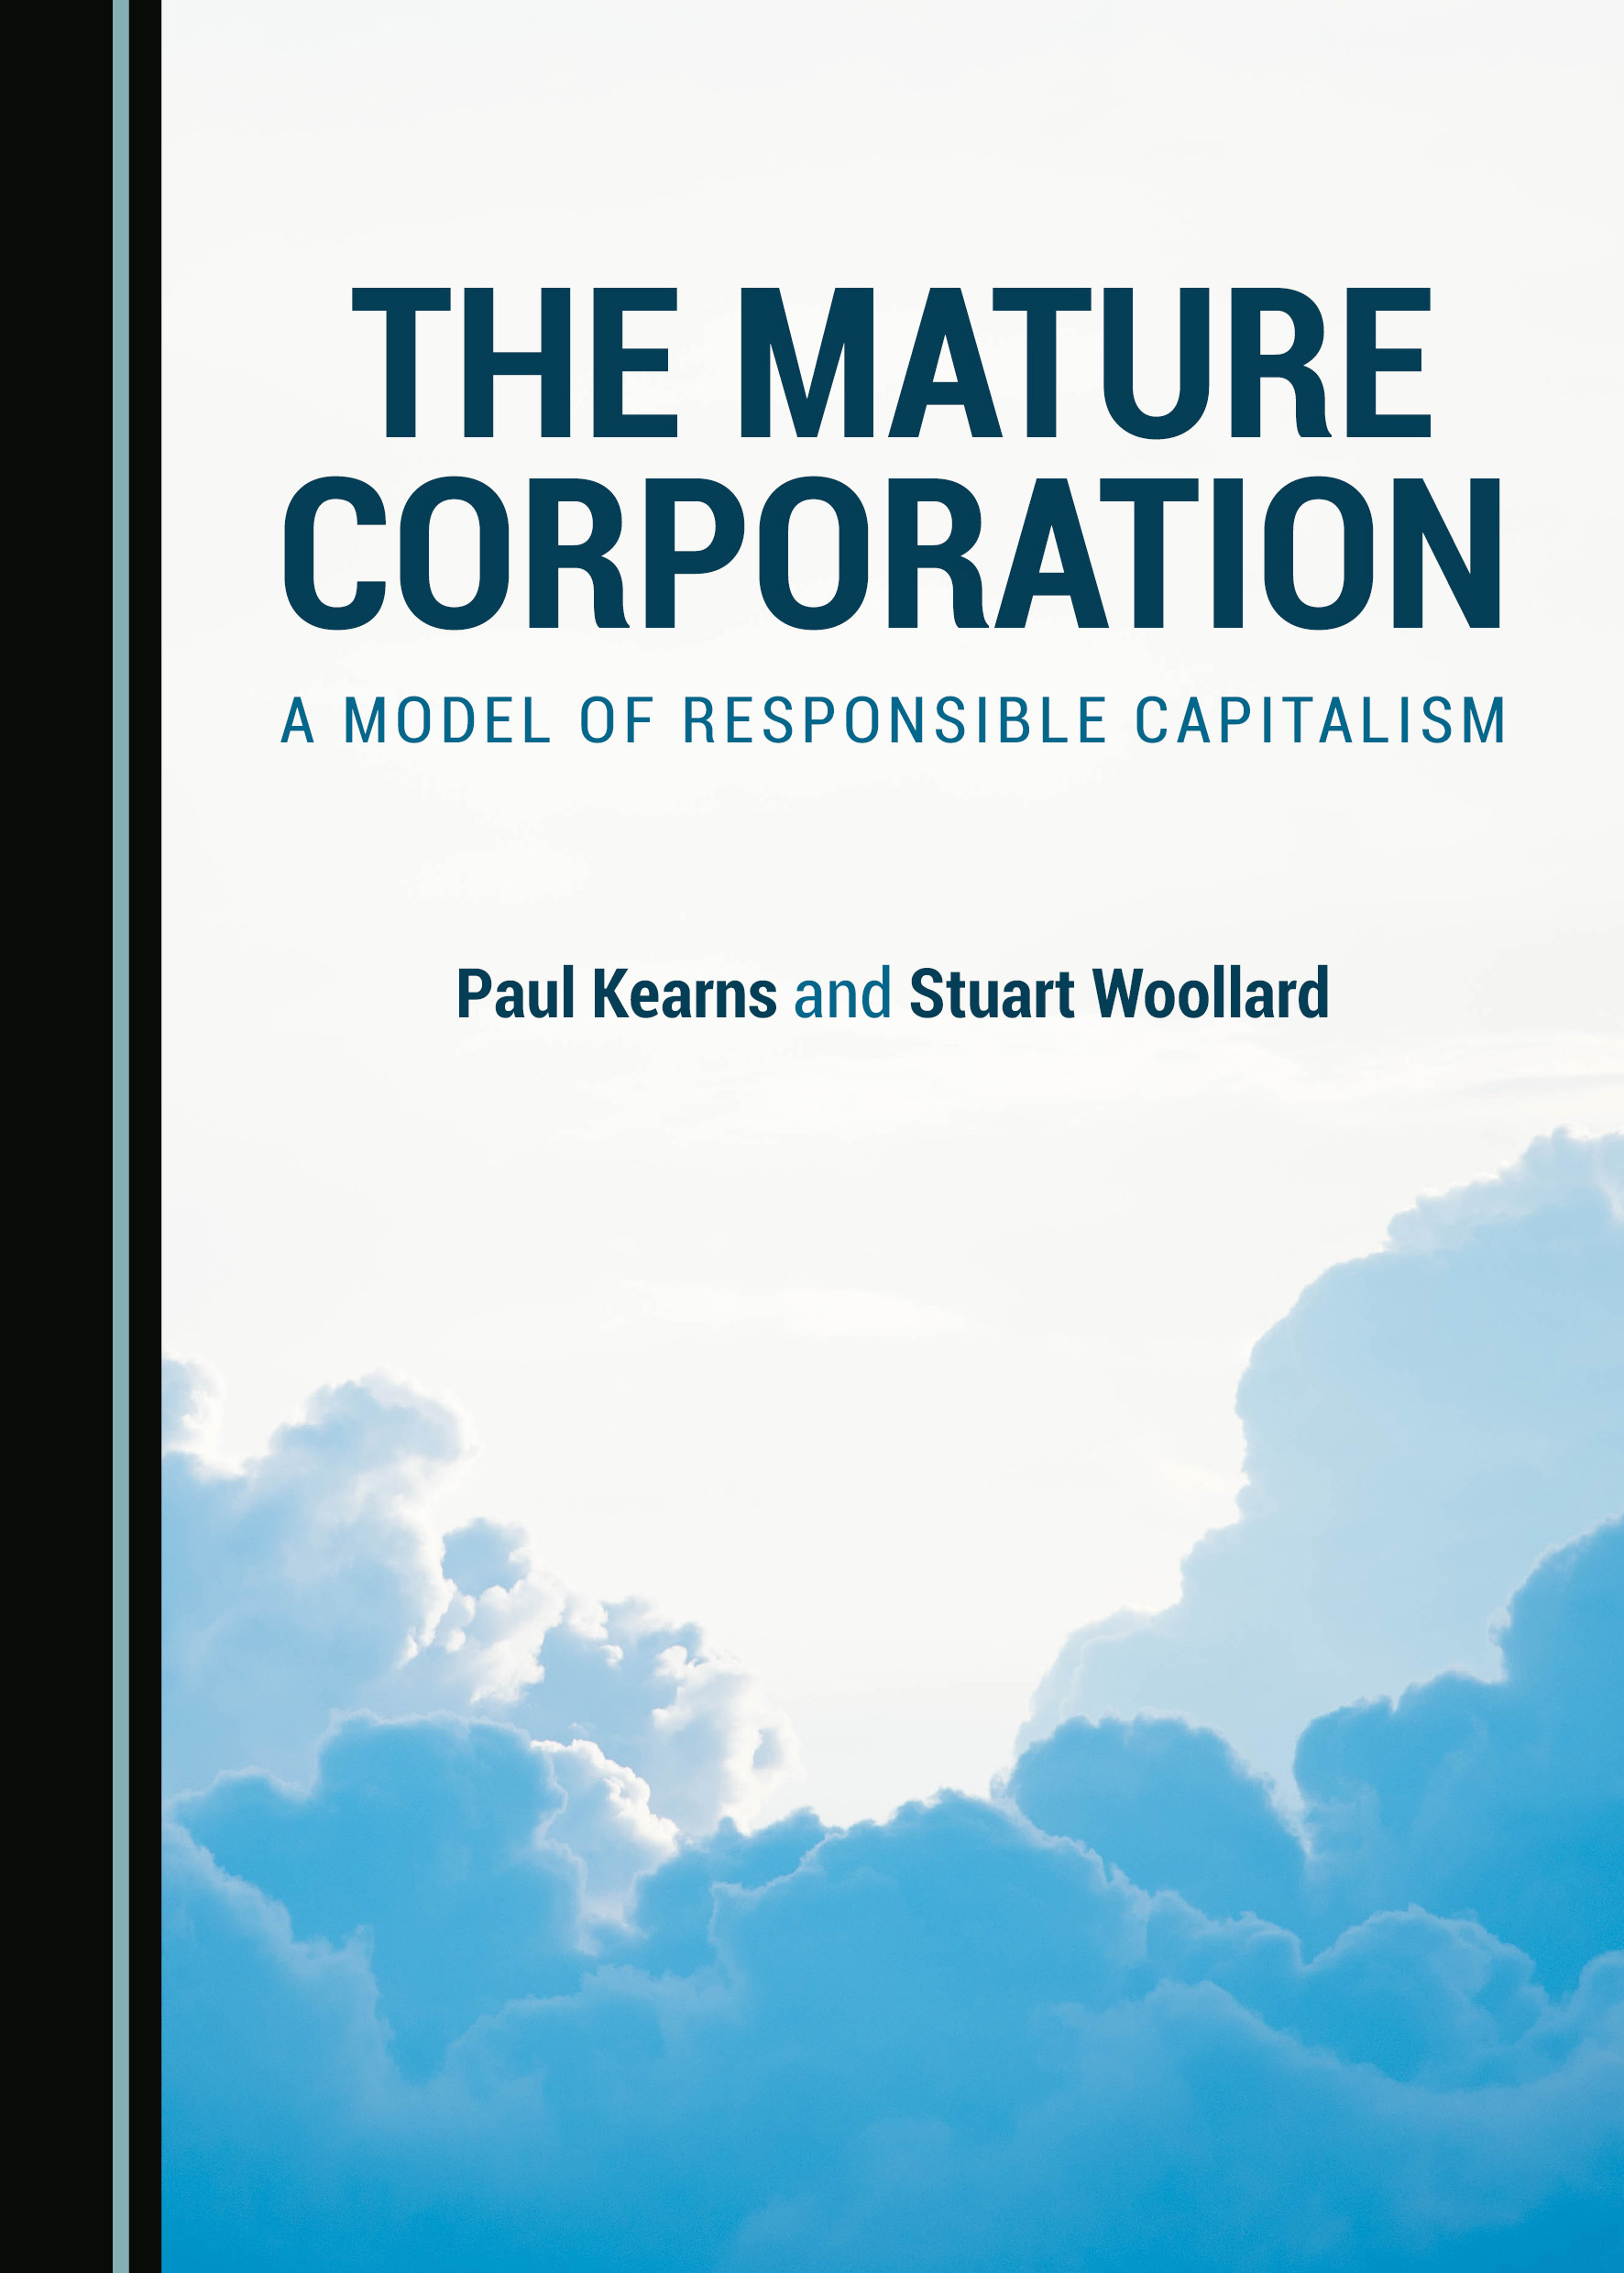 The Mature Corporation: A Model of Responsible Capitalism